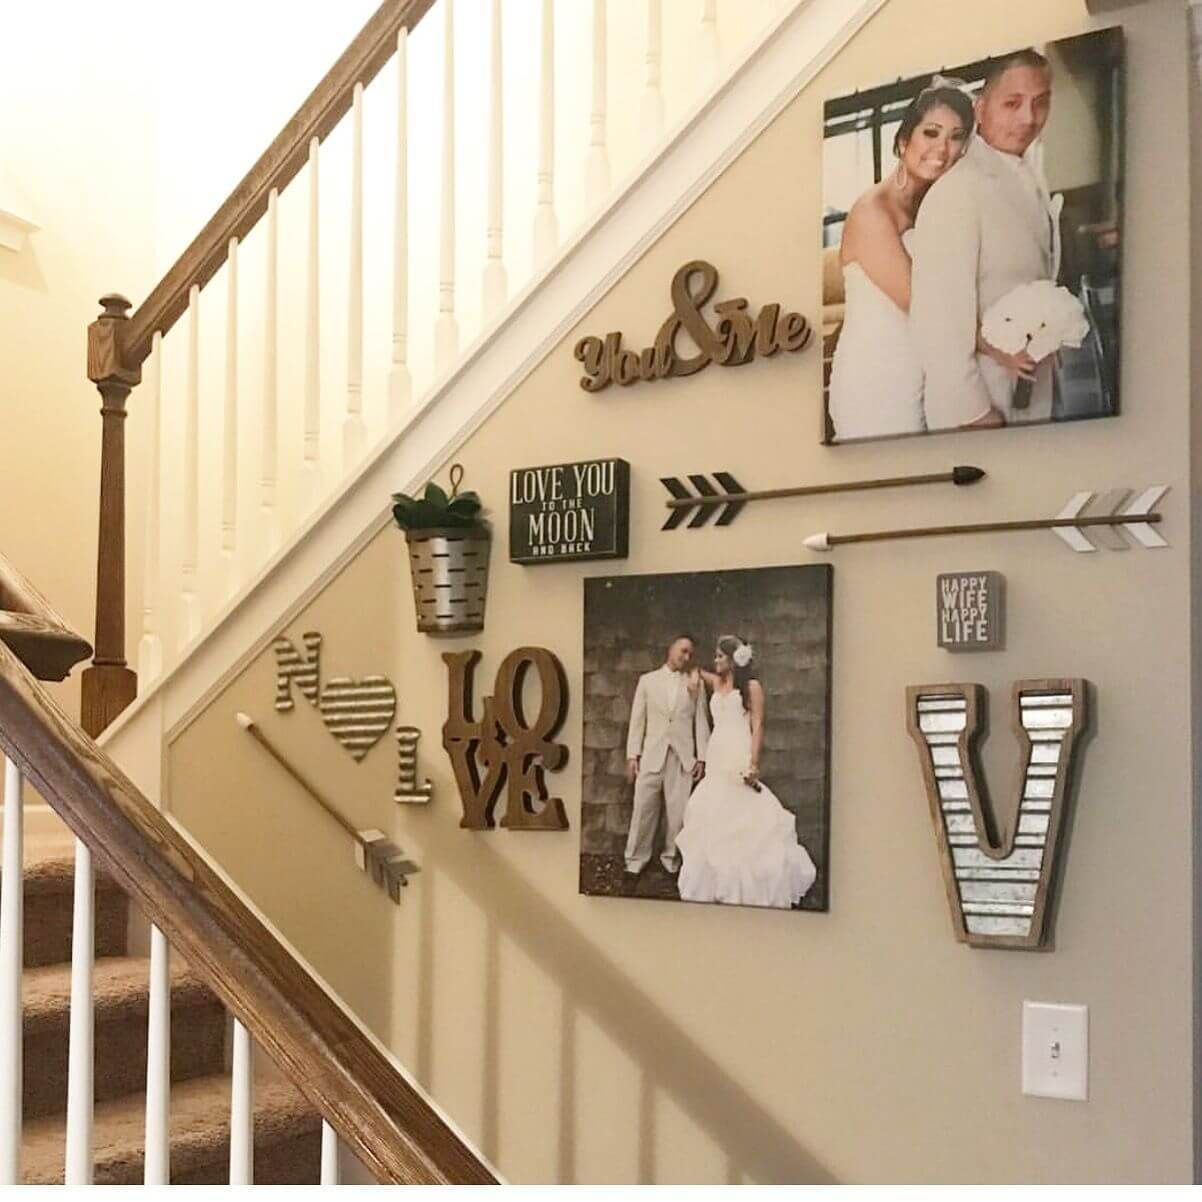 Staircase Ideas For Your Hallway That Will Really Make An: 16 Best Staircase Wall Decor Ideas To Make Your Hallway